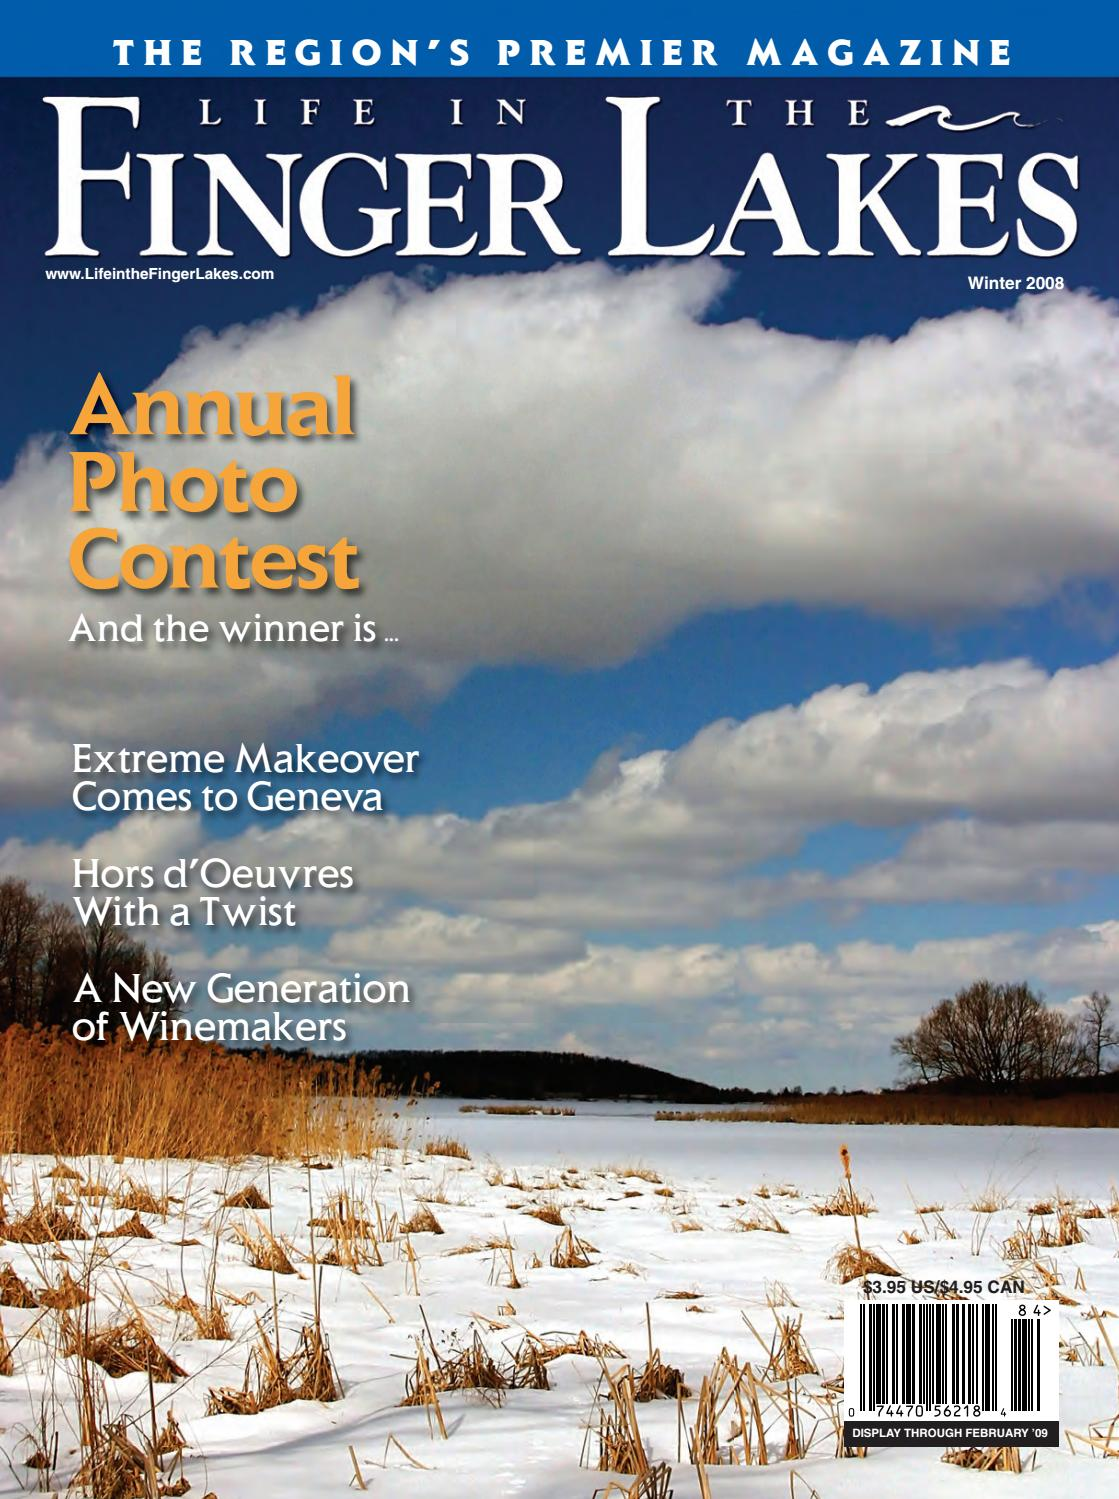 Life in the Finger Lakes Winter 2008 by Fahy Williams